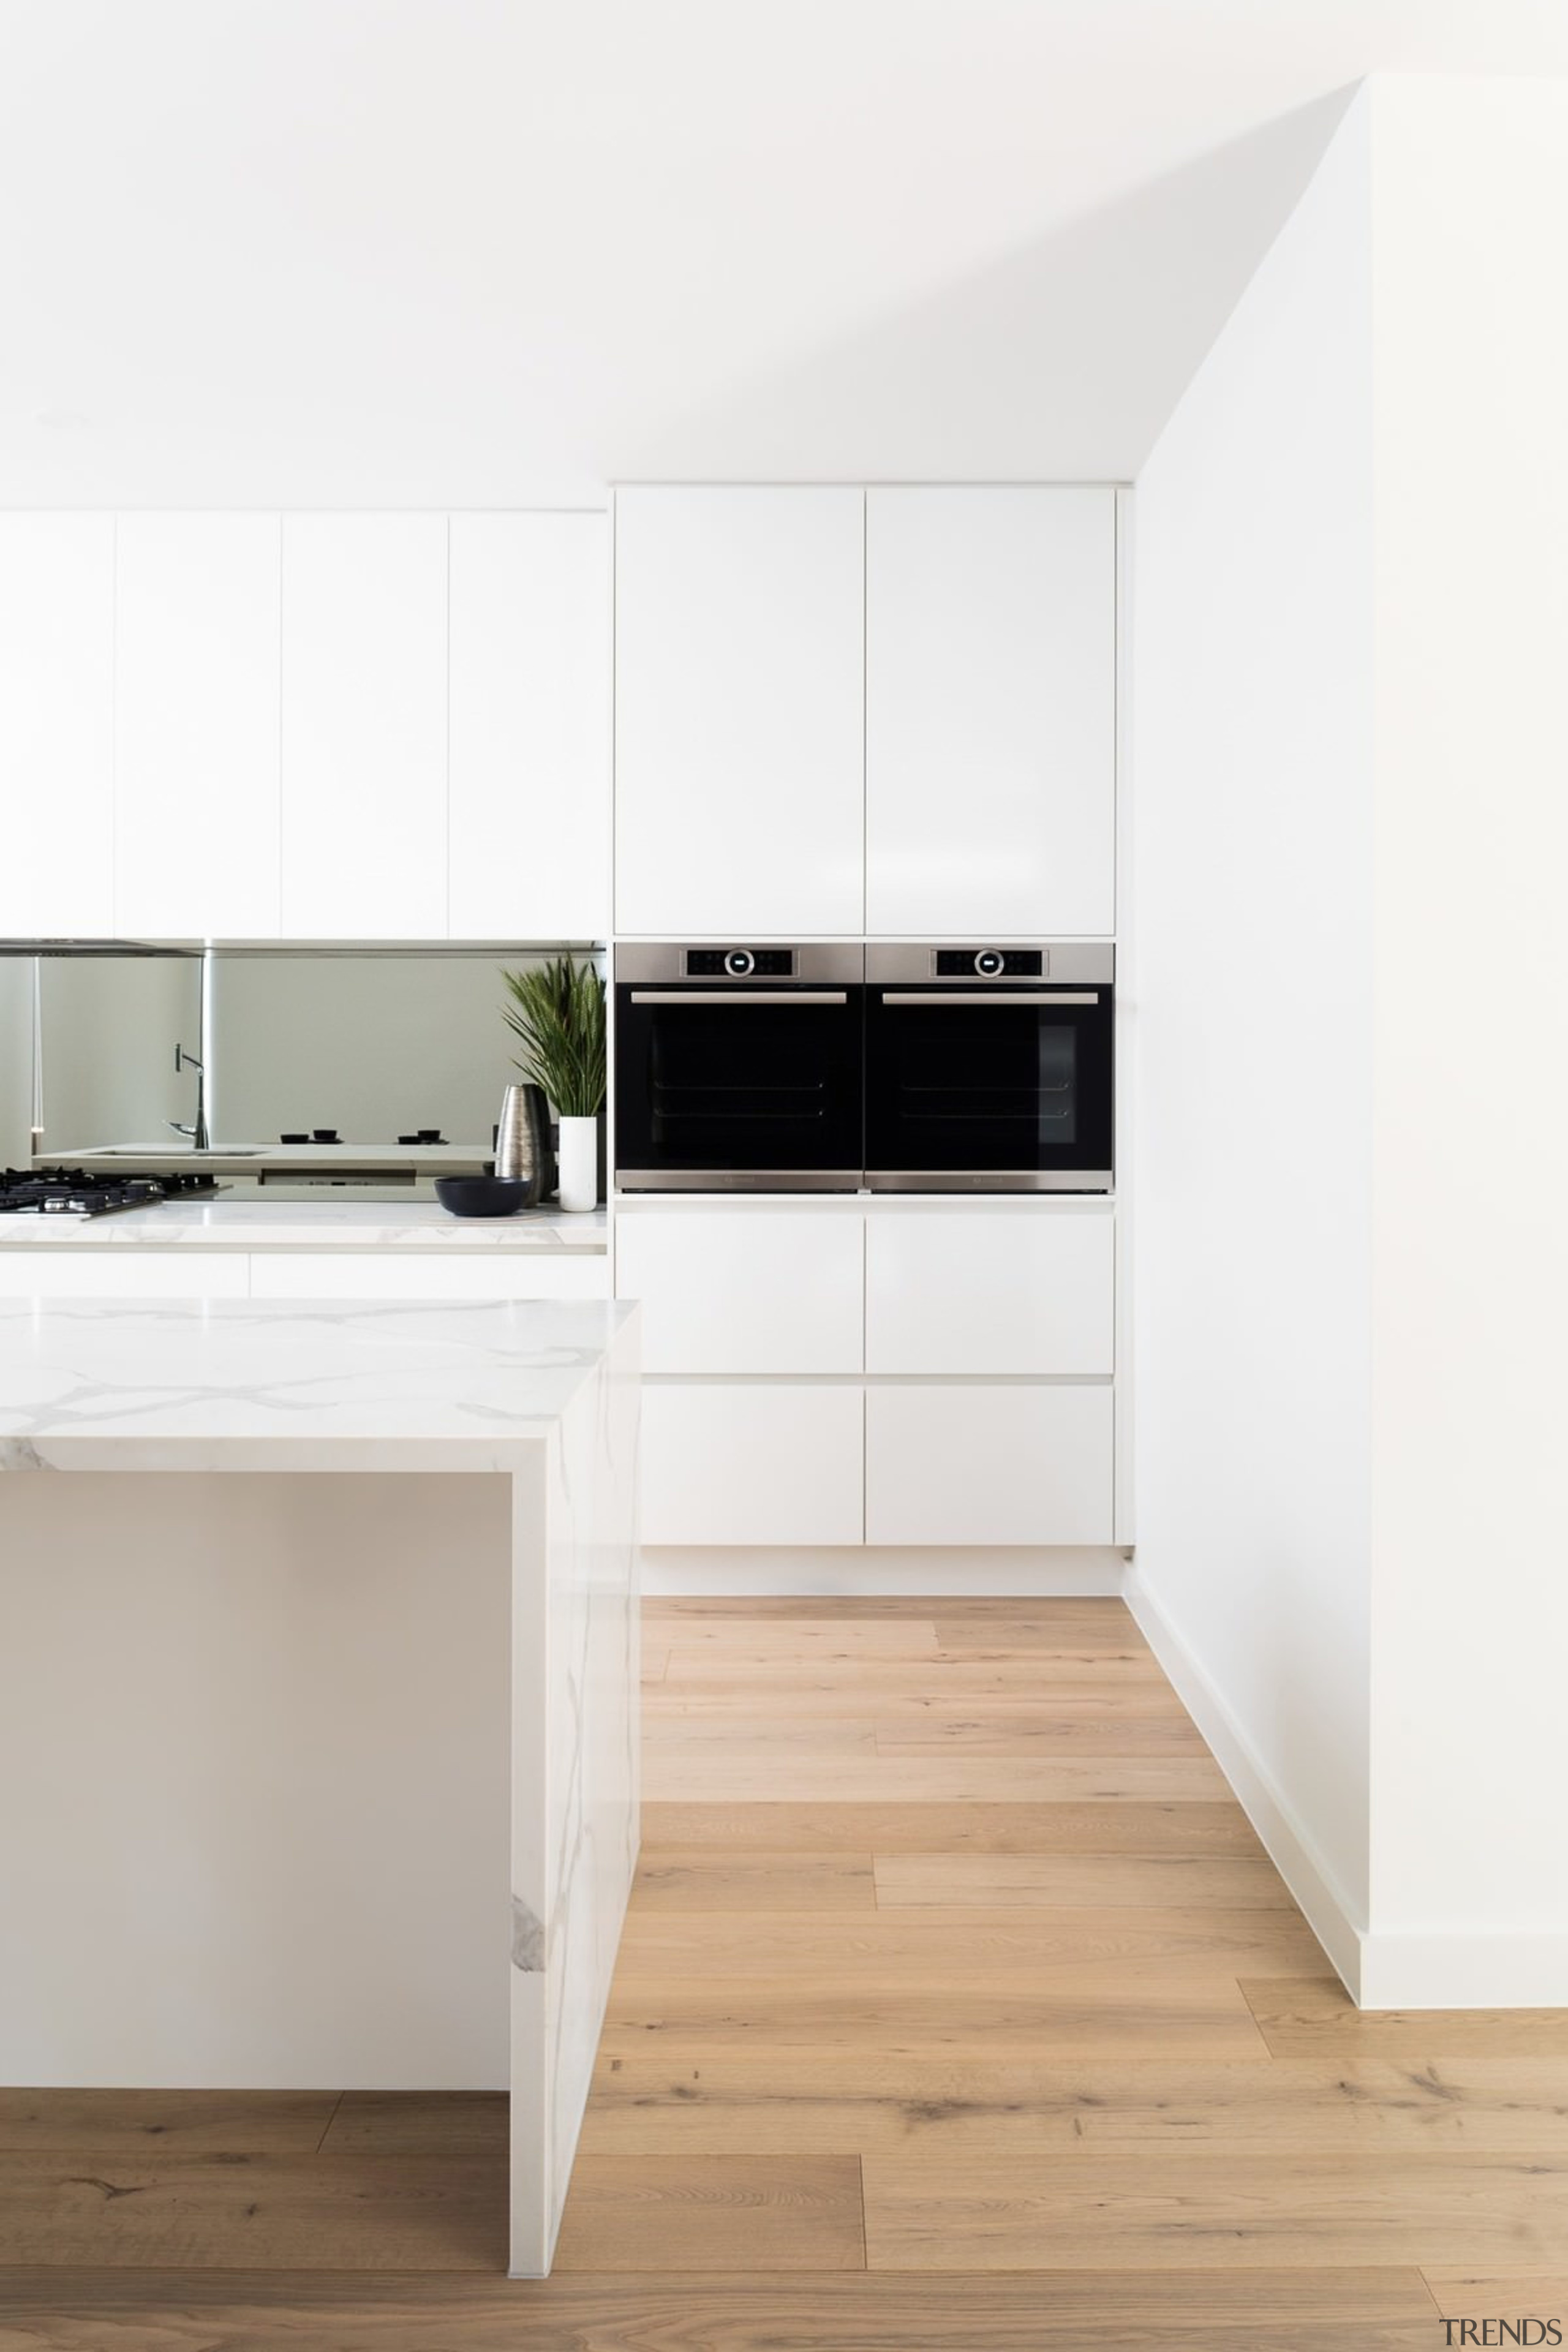 Furthering a theme of symmetry found throughout parts angle, countertop, floor, flooring, interior design, kitchen, laminate flooring, product, product design, wood flooring, white